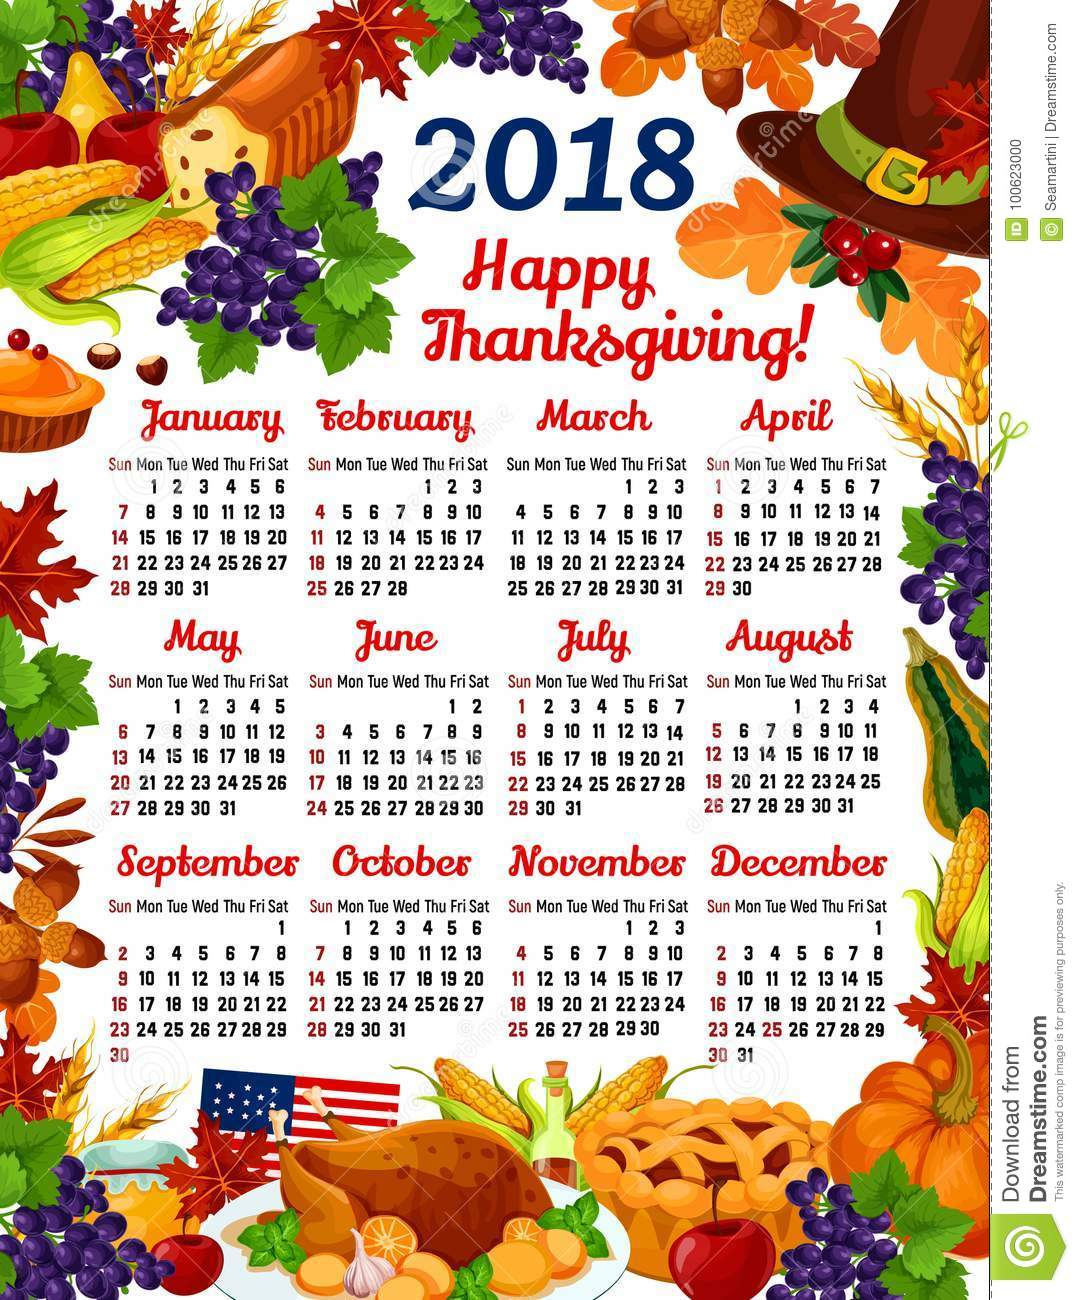 thanksgiving day 2018 calendar template design of turkey fruit pie or maple leaf and oak acorn autumn wine or mushroom and pumpkin cornucopia